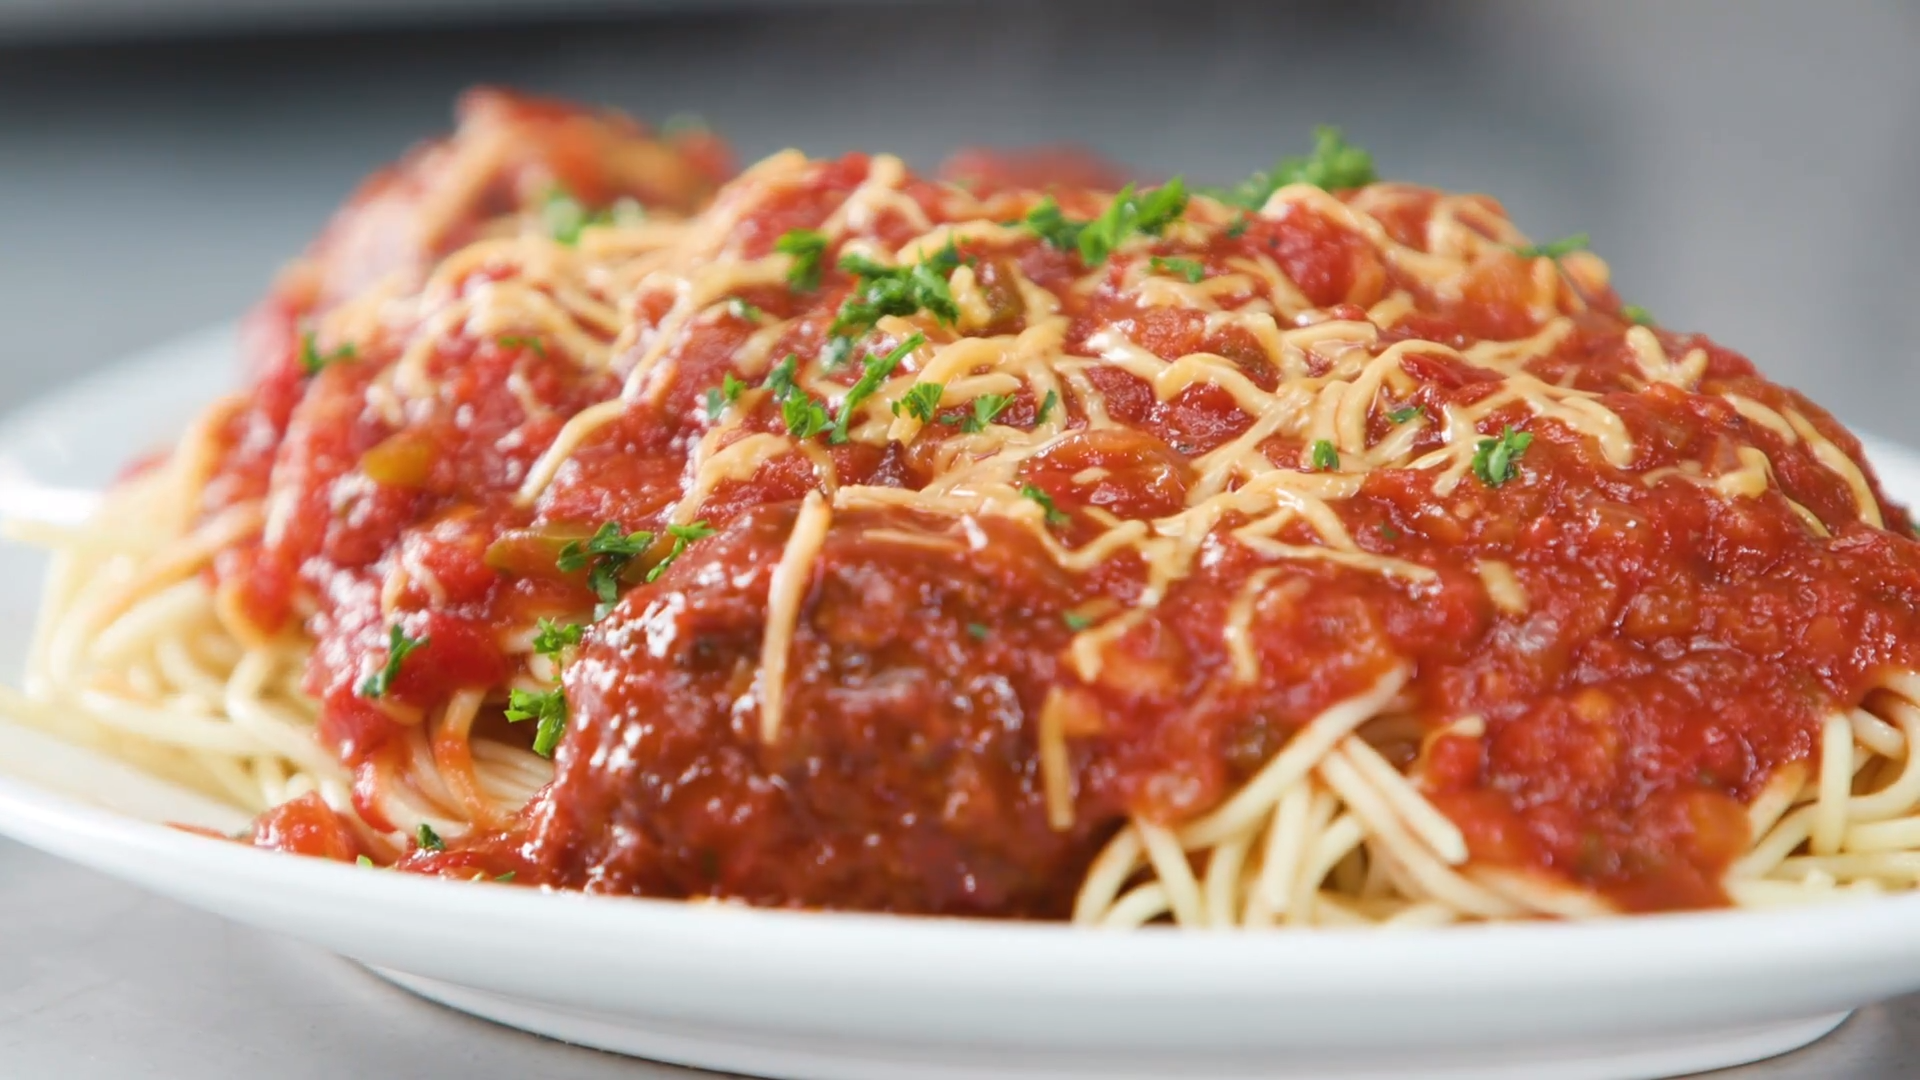 Barbecue Spaghetti & Meatballs Recipe